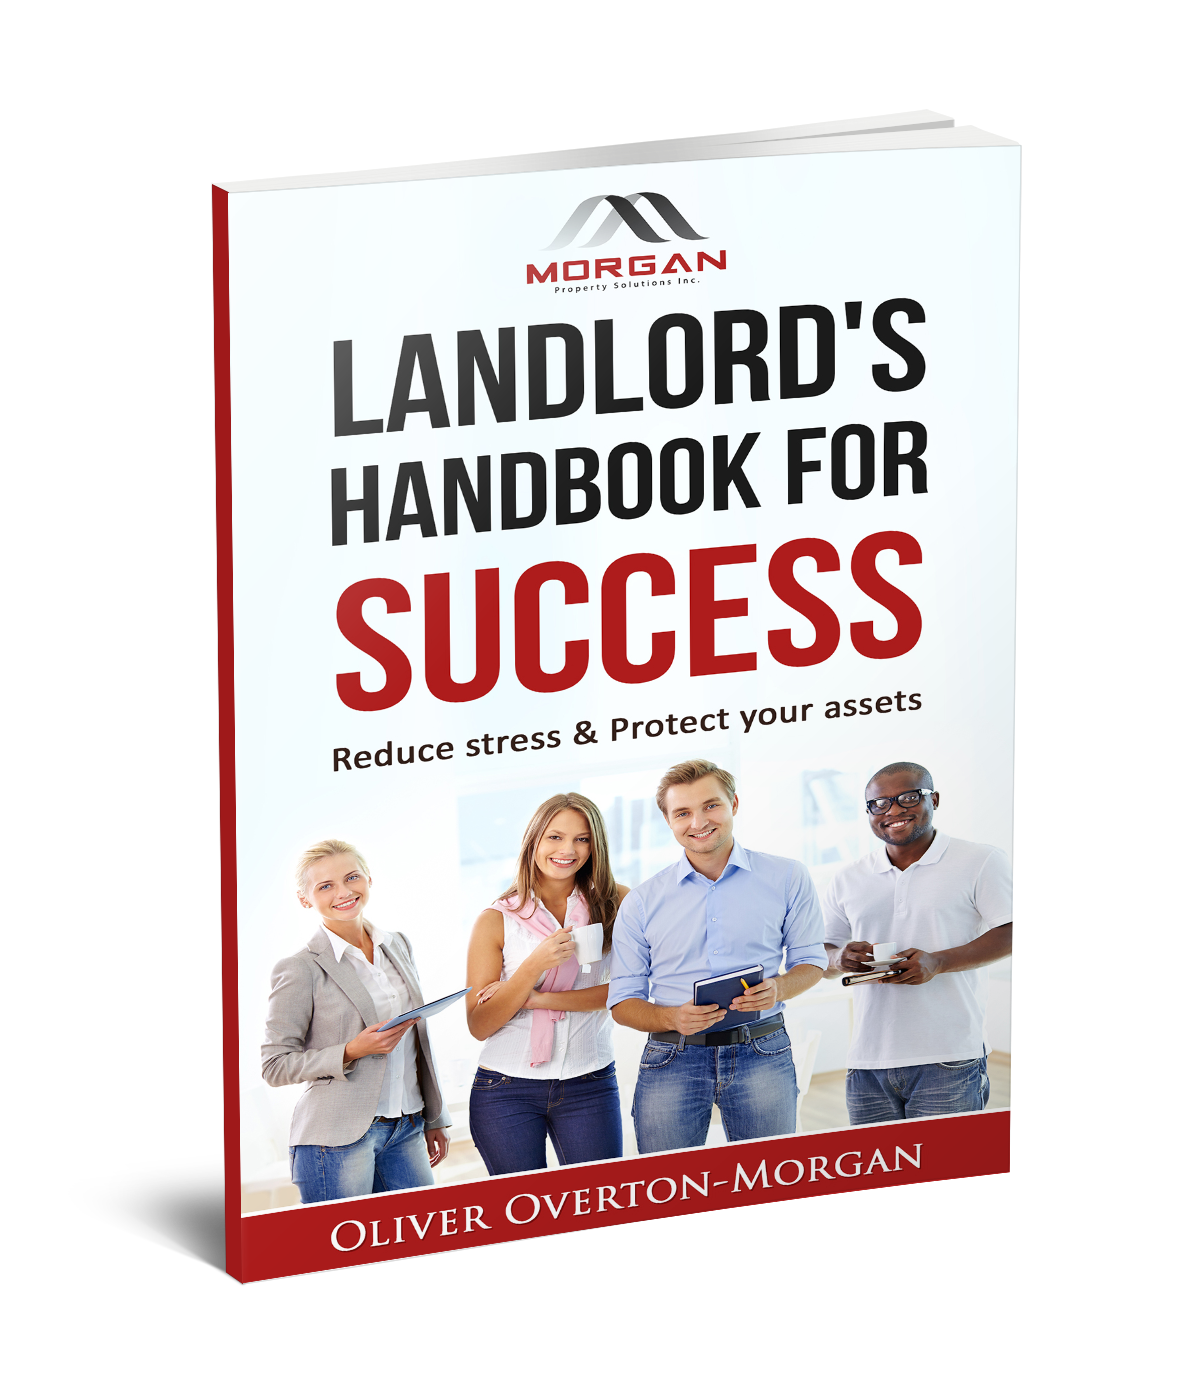 Landlords Handbook for Success in Property Management